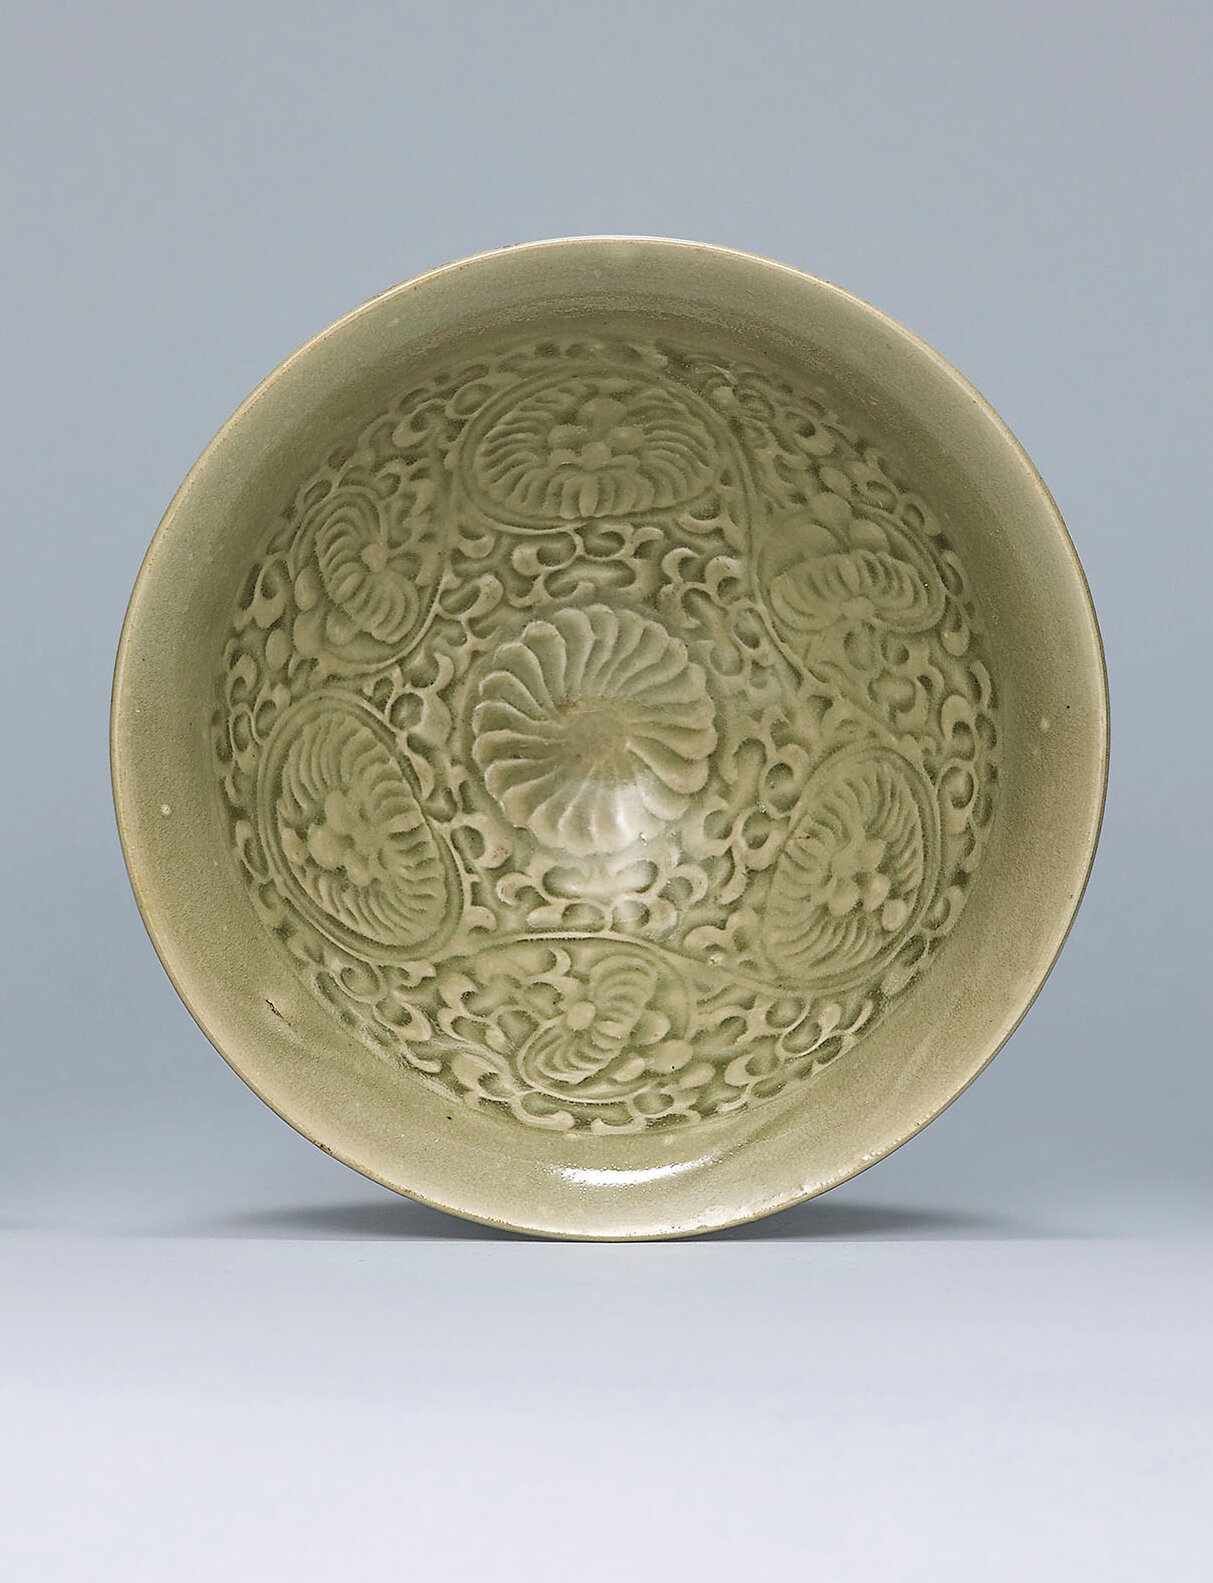 A moulded Yaozhou celadon bowl, Song dynasty (960-1279) ------WebKitFormBoundaryGZApGXmpKtiUwOWA Content-Disposition: form-data; name=